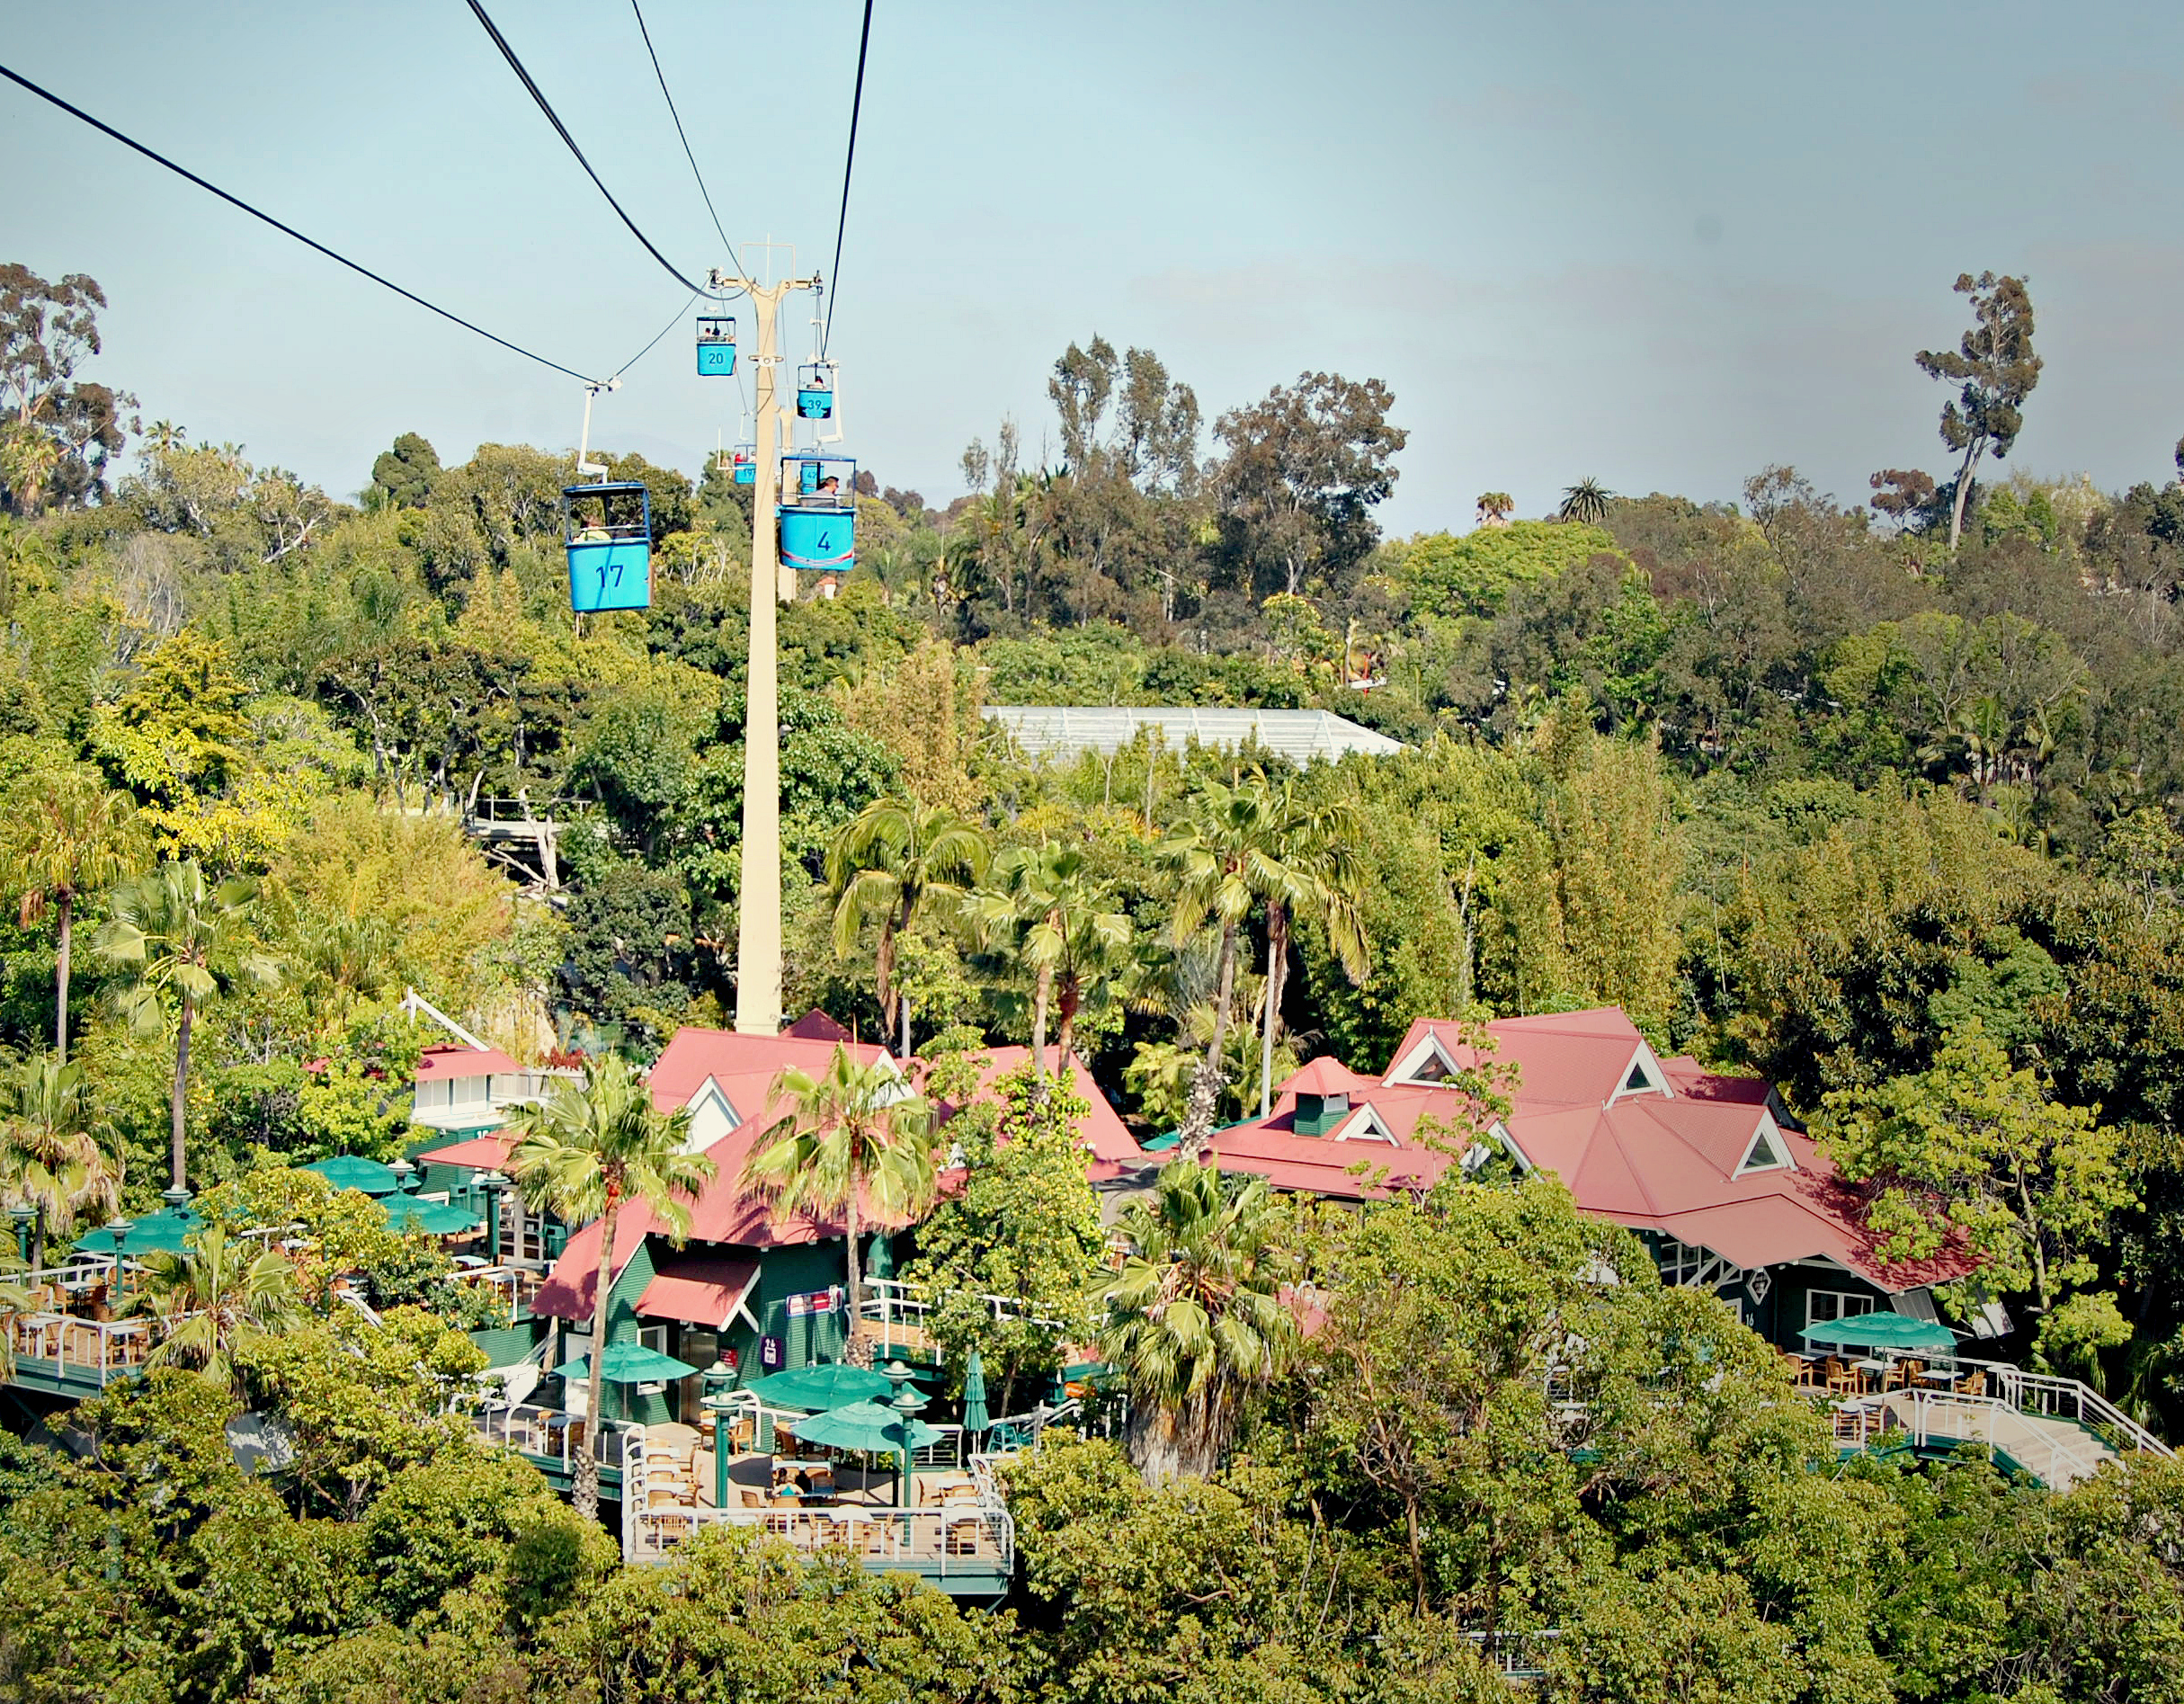 Gondolas at the San Diego Zoo, California